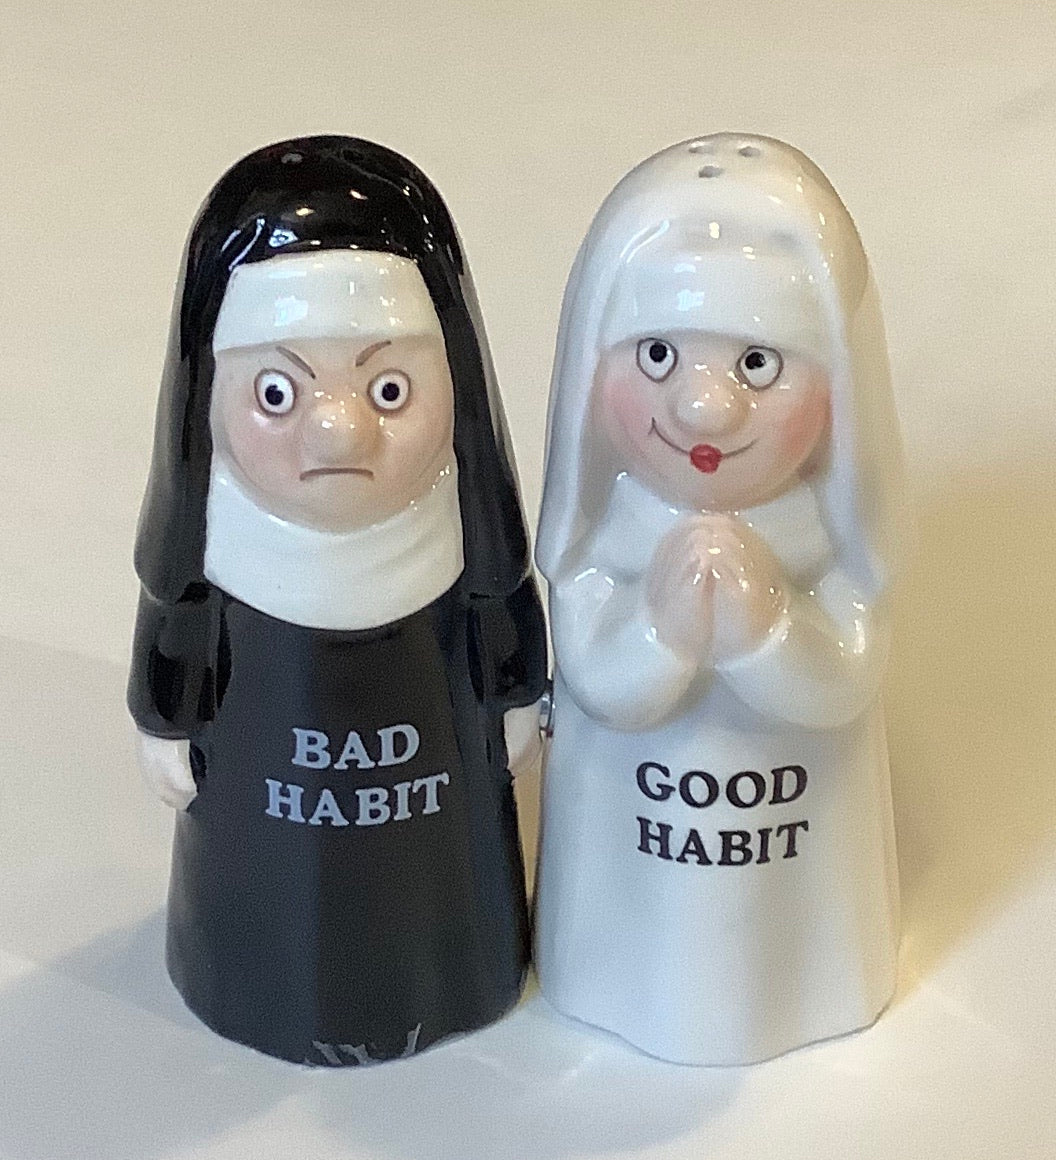 GOOD HABIT - BAD HABIT SALT & PEPPER SHAKER SET